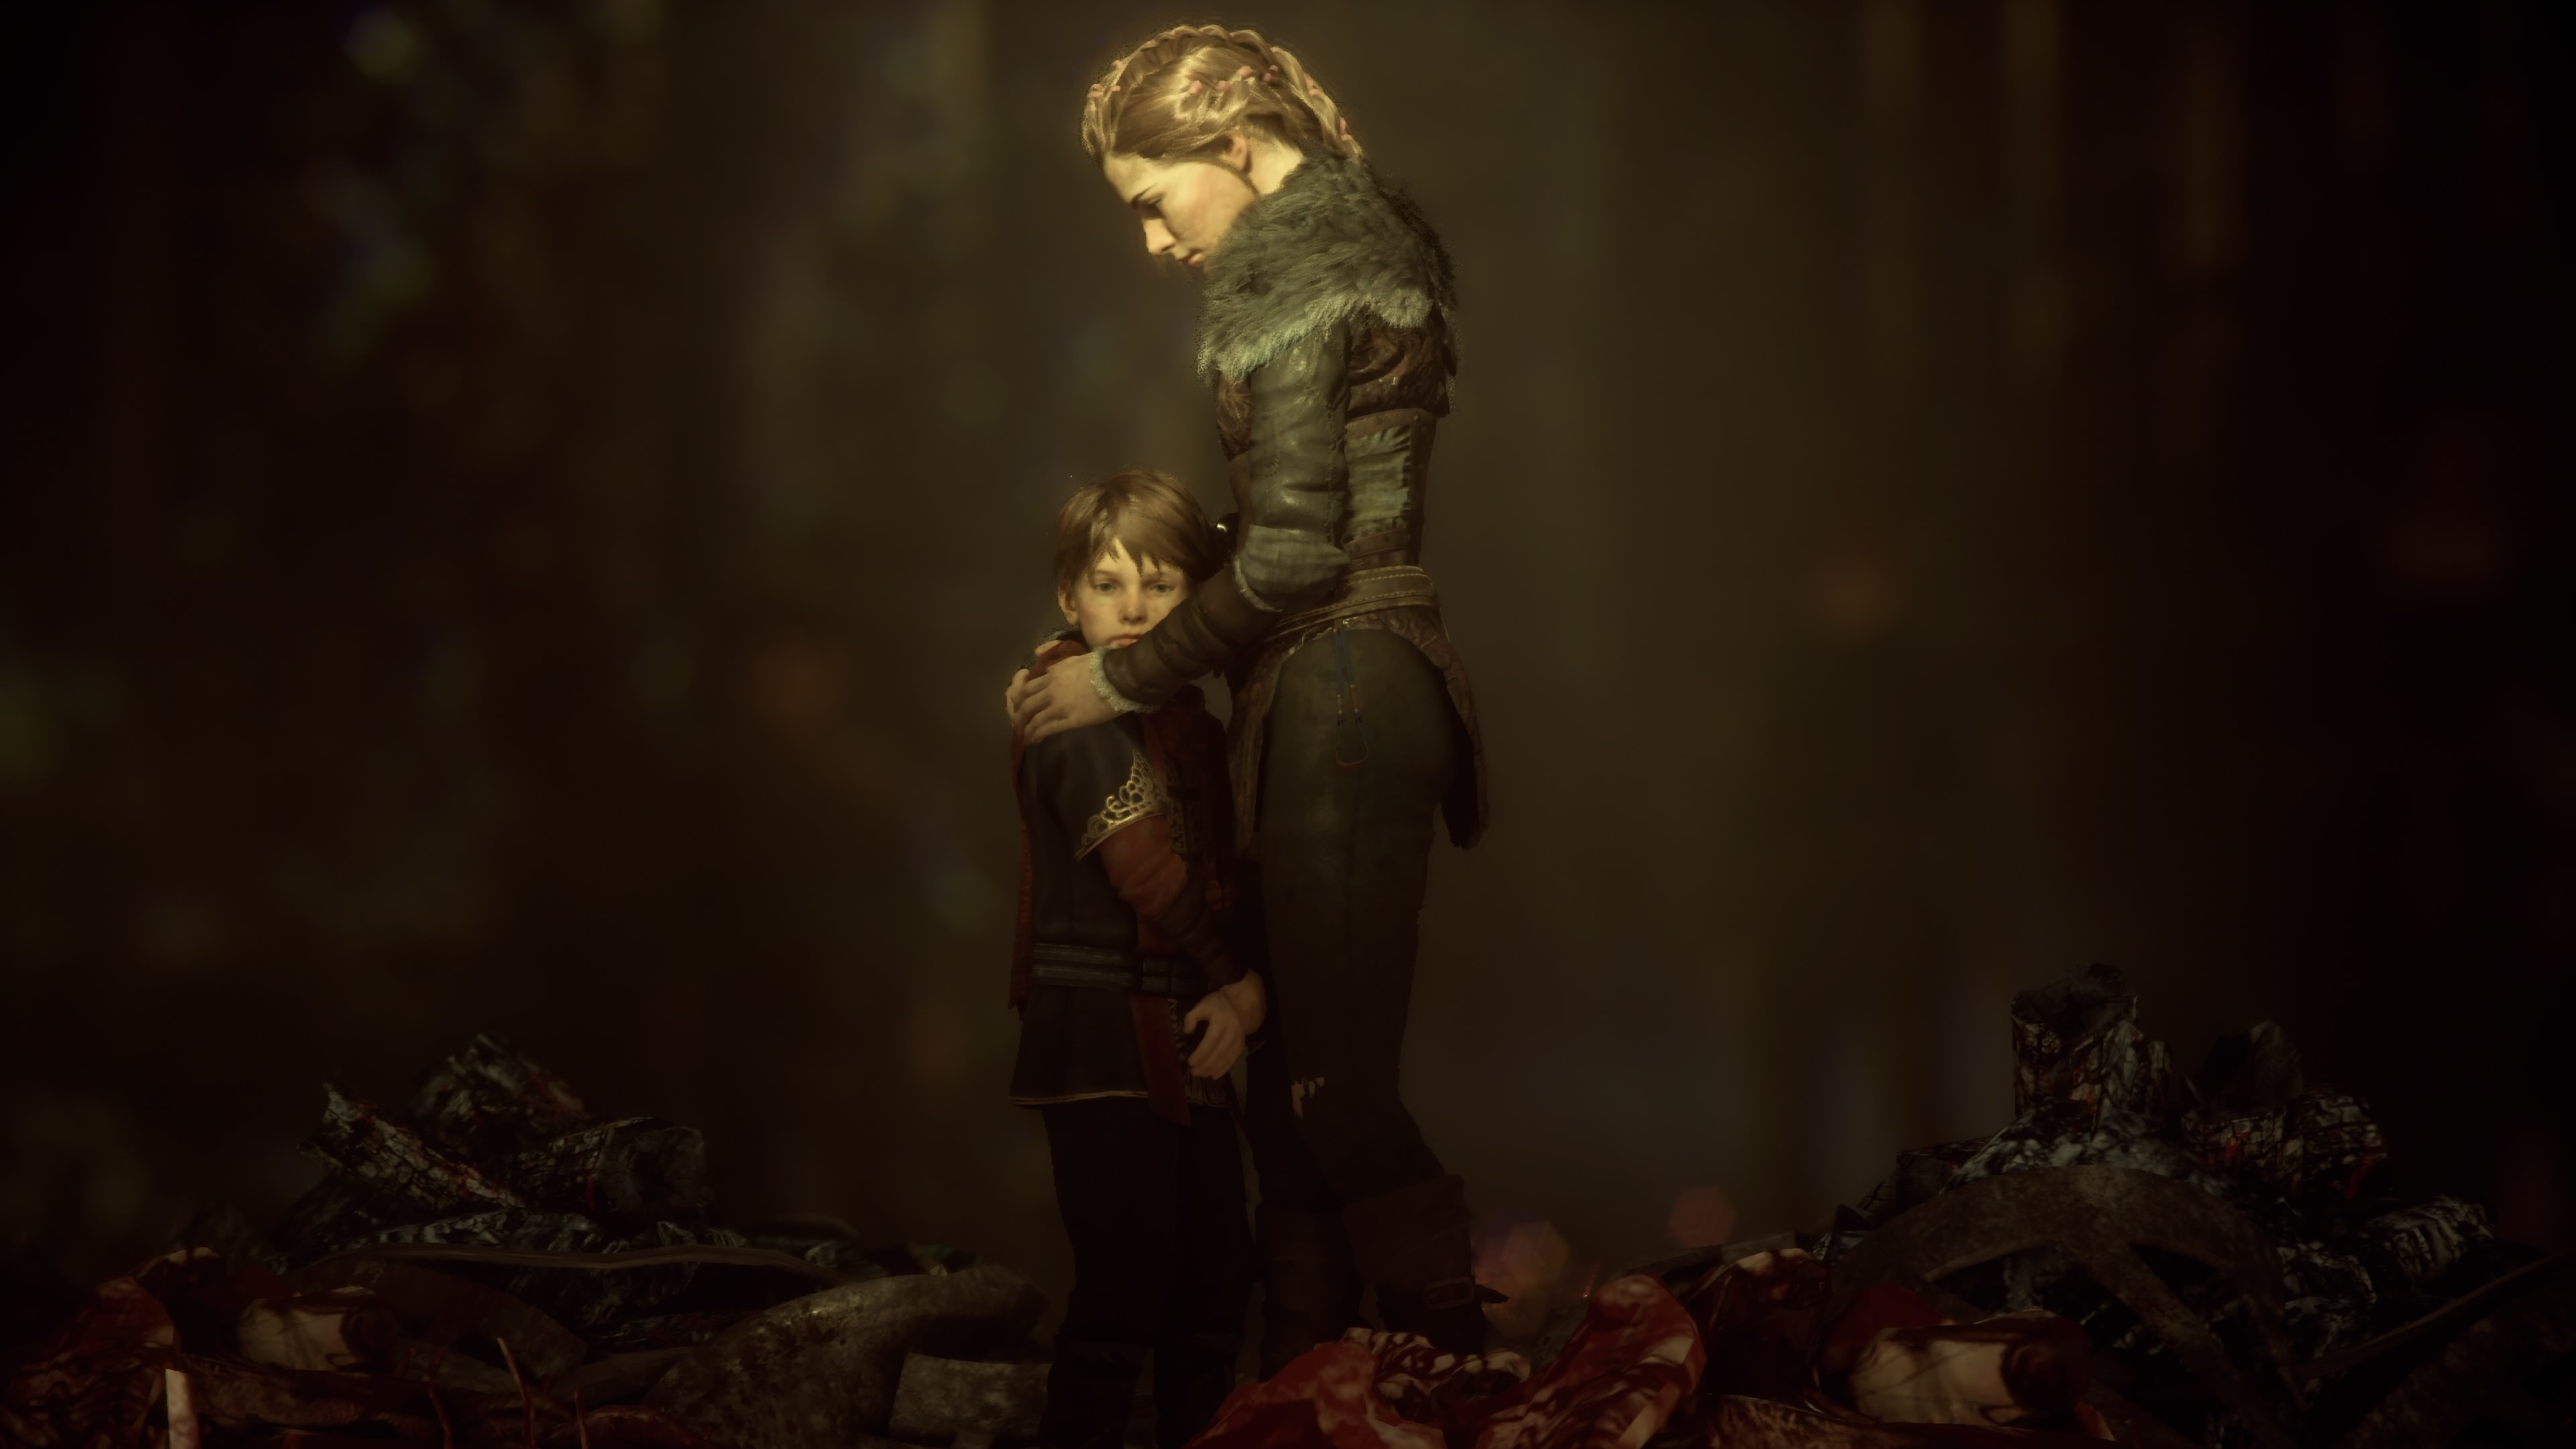 A Plague Tale Innocence Game Wallpaper Hd Games 4k Wallpapers